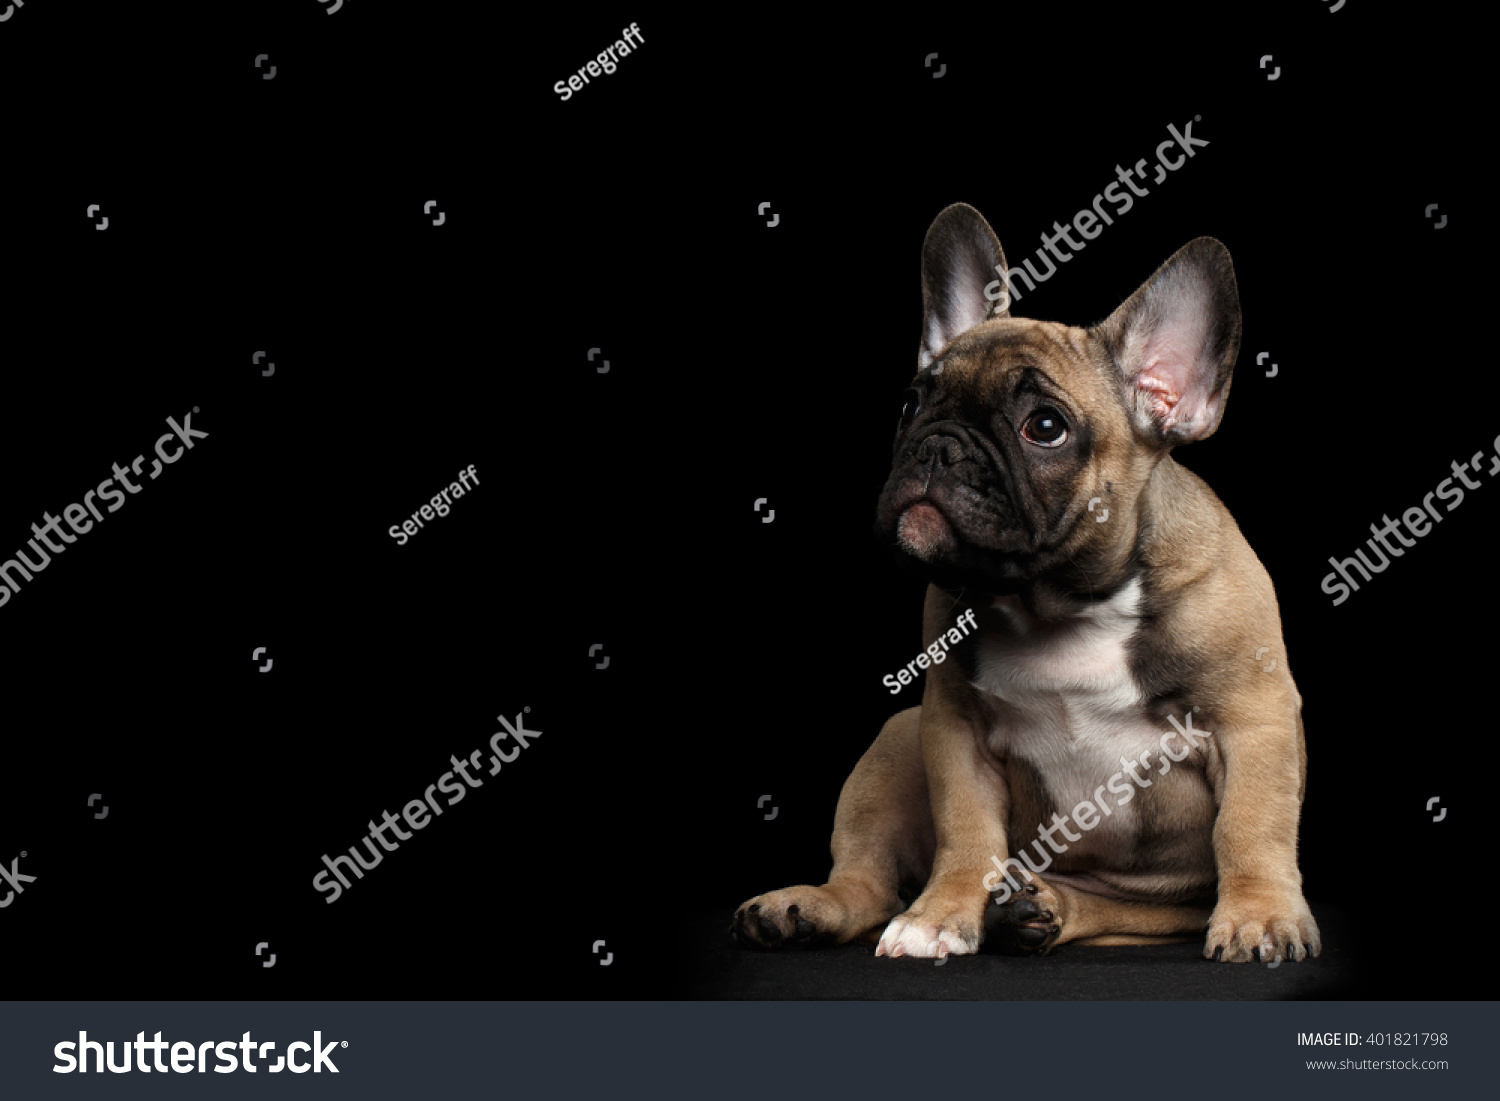 Funny French Bulldog Puppy Cute Sitting Stock Photo Edit Now 401821798